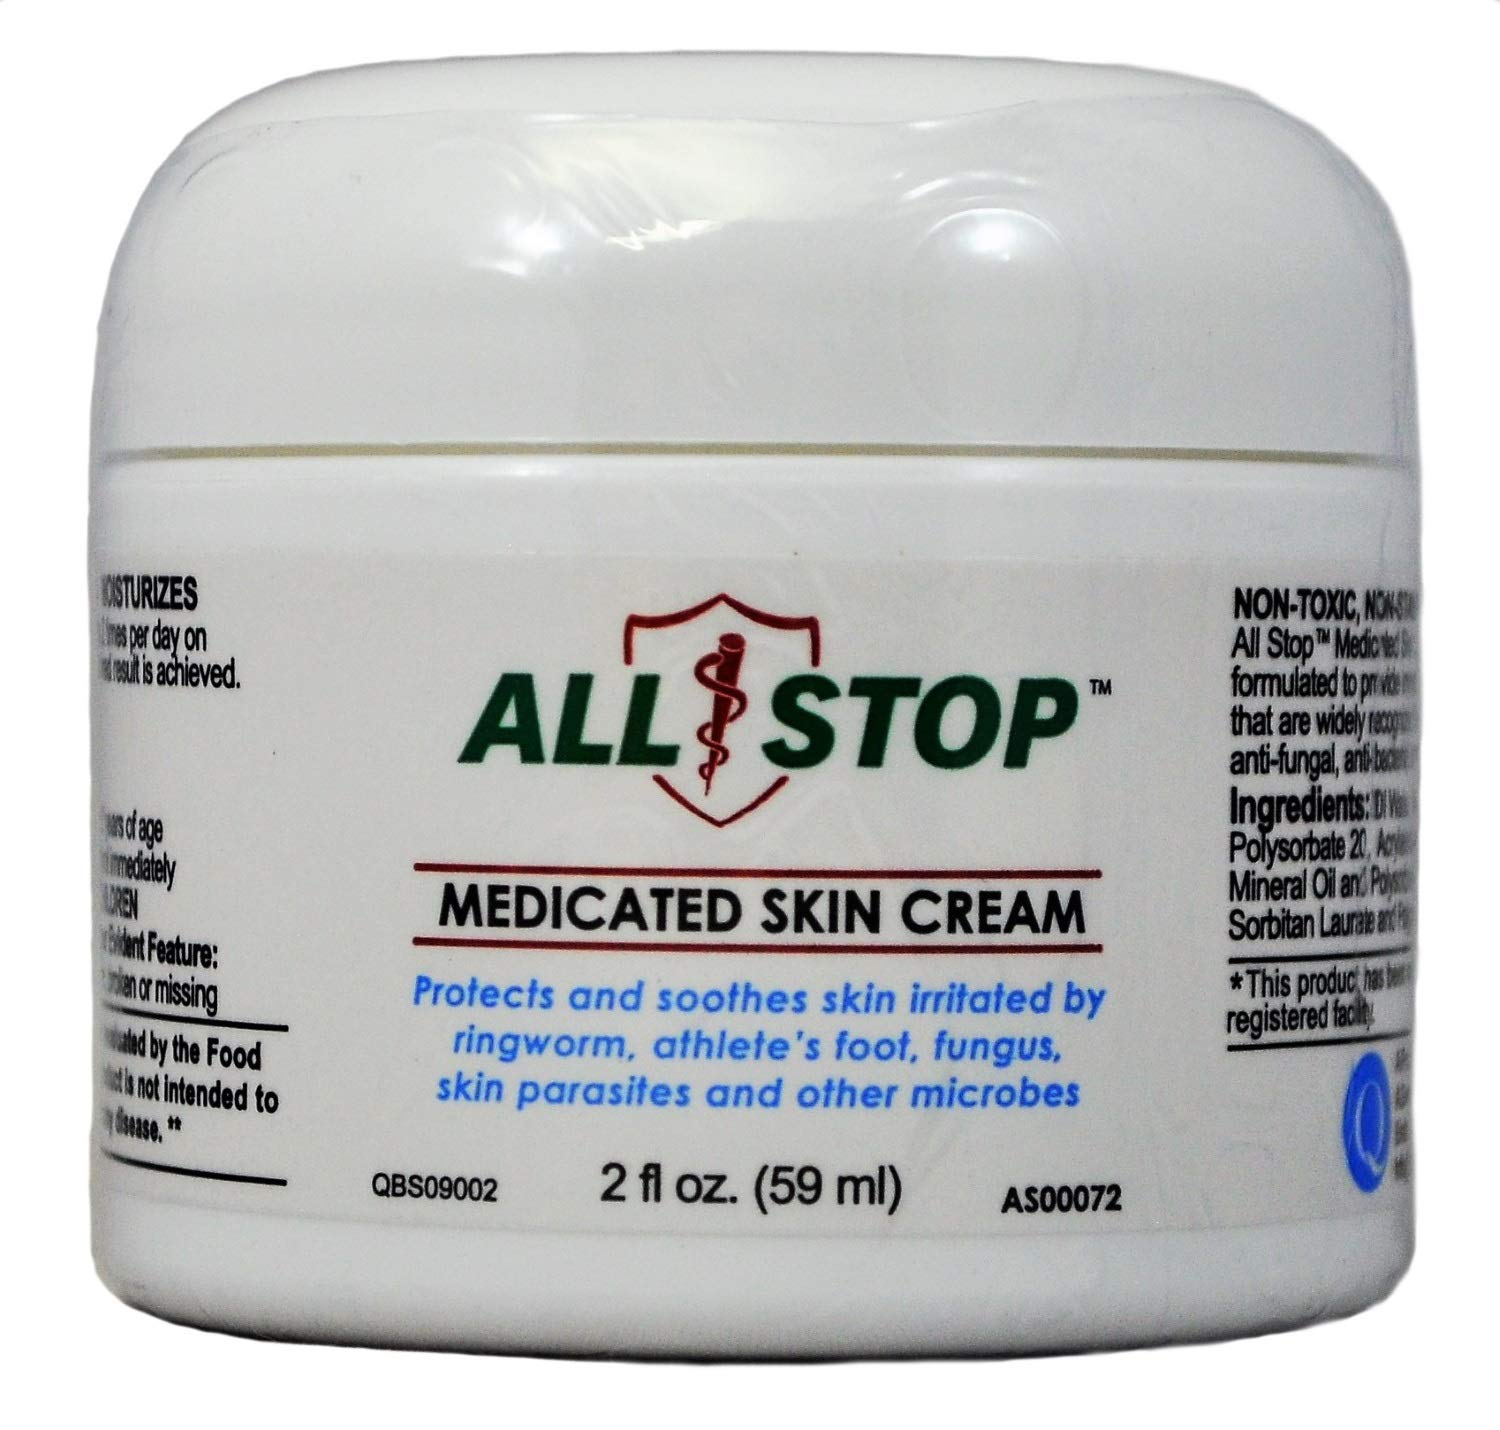 Medicated Skin Cream Antifungal Cream for Jock Itch, Ringworm, Athlete's Foot, Wounds, Skin Rashes - 2 oz by All Stop